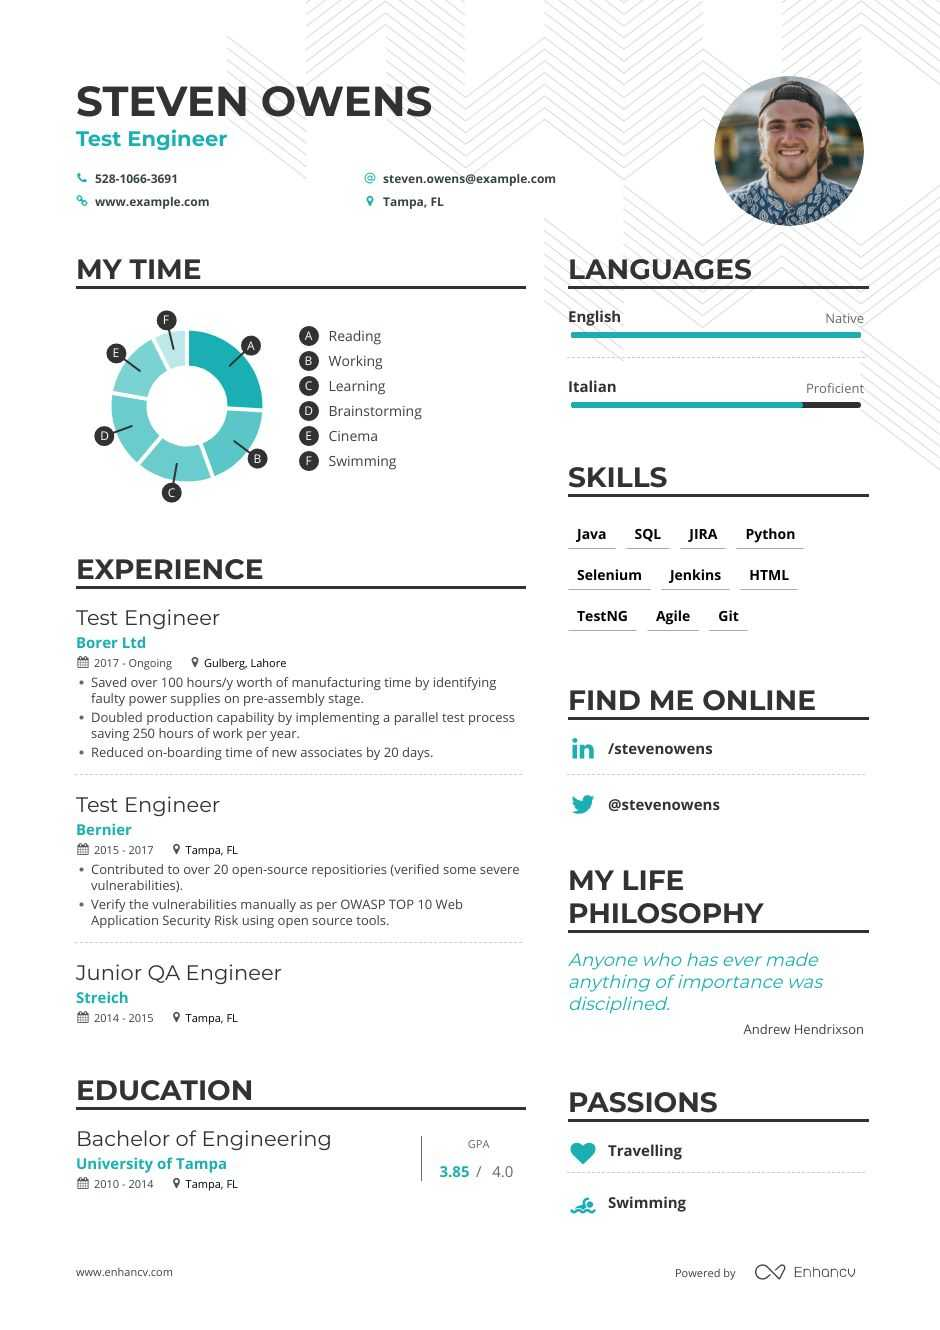 top test engineer resume examples expert tips enhancv automation tester sample psych help Resume Automation Tester Sample Resume